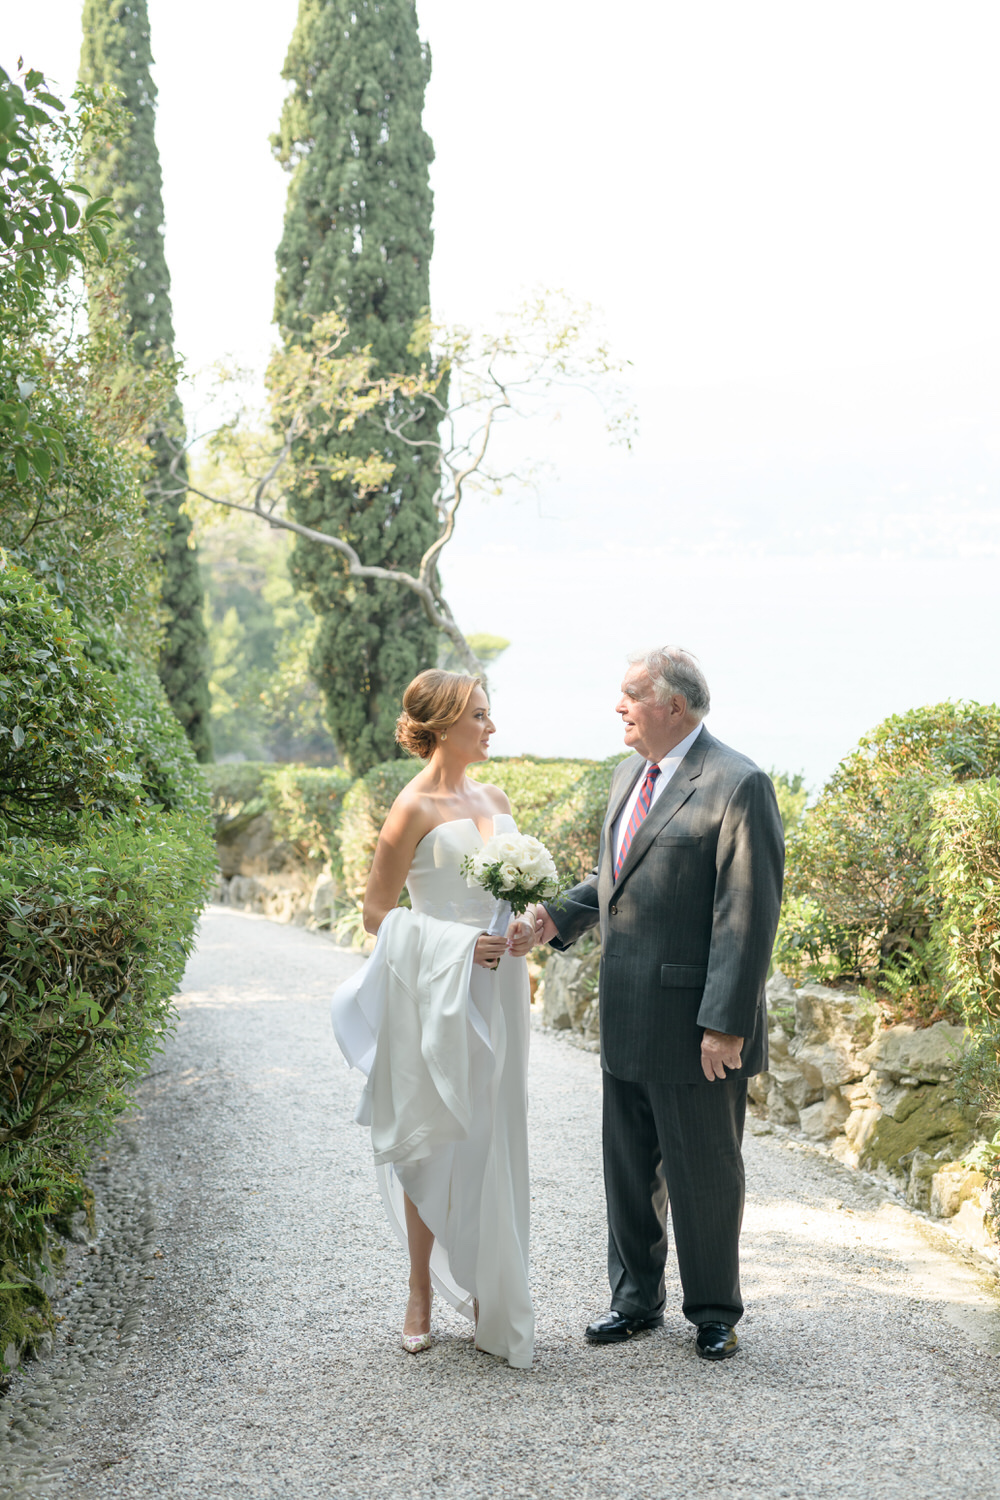 Garda Lake Wedding Photographer - S&B - ©bottega53-29.JPG